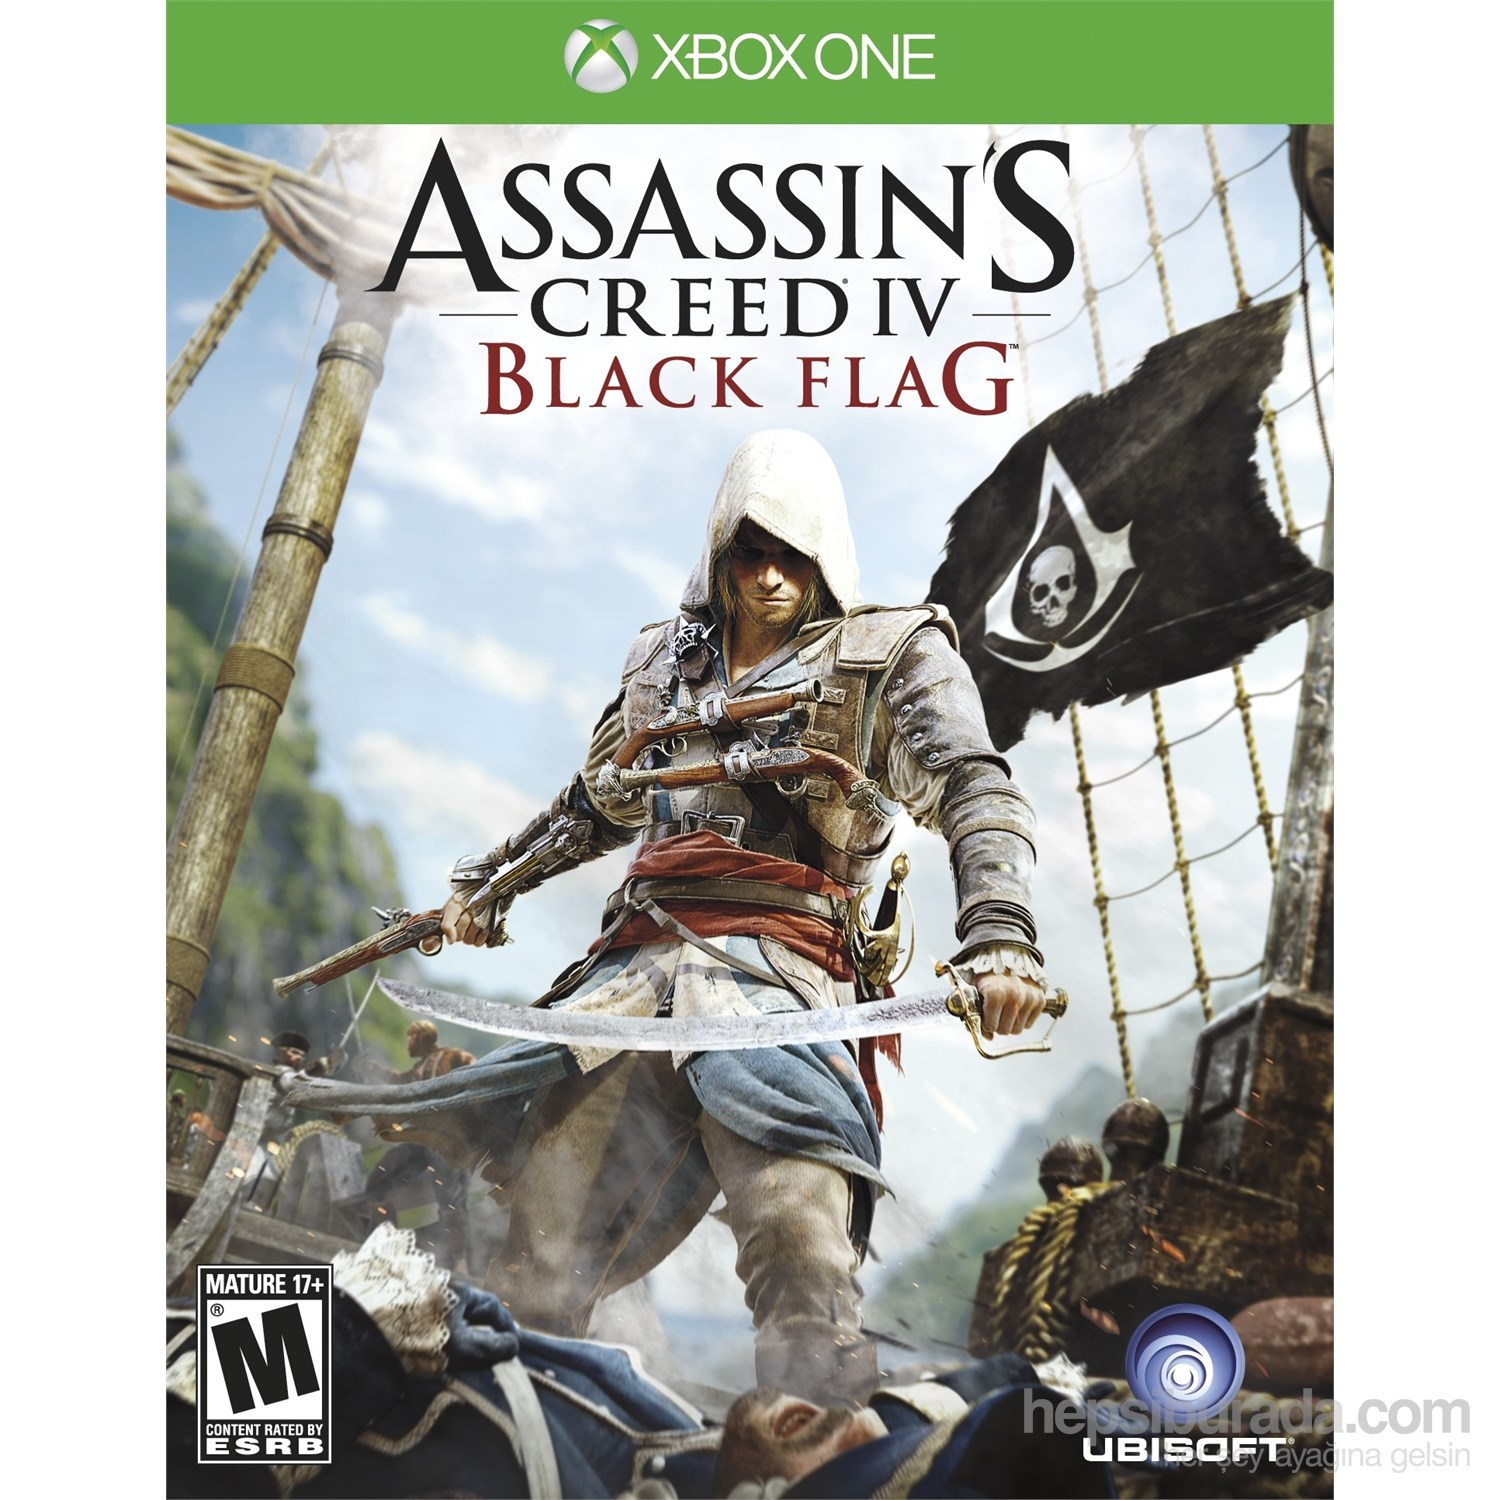 Assassins Creed IV Black Flag XBox One